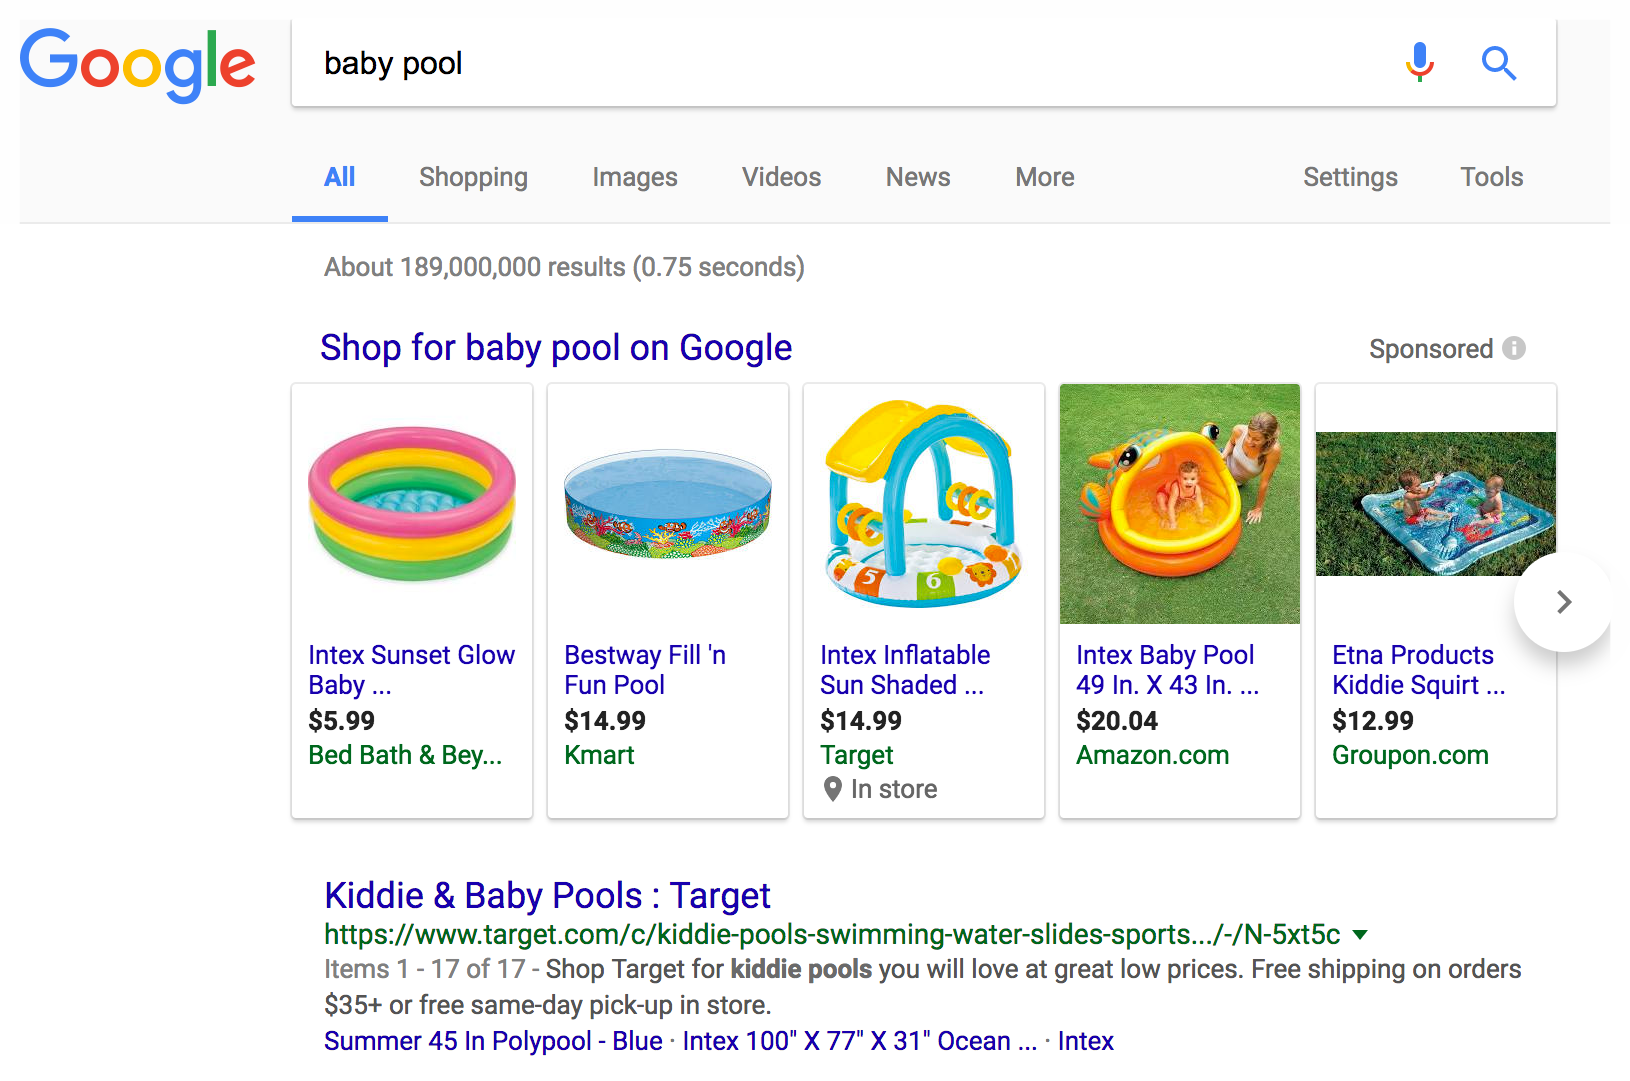 search for baby pool